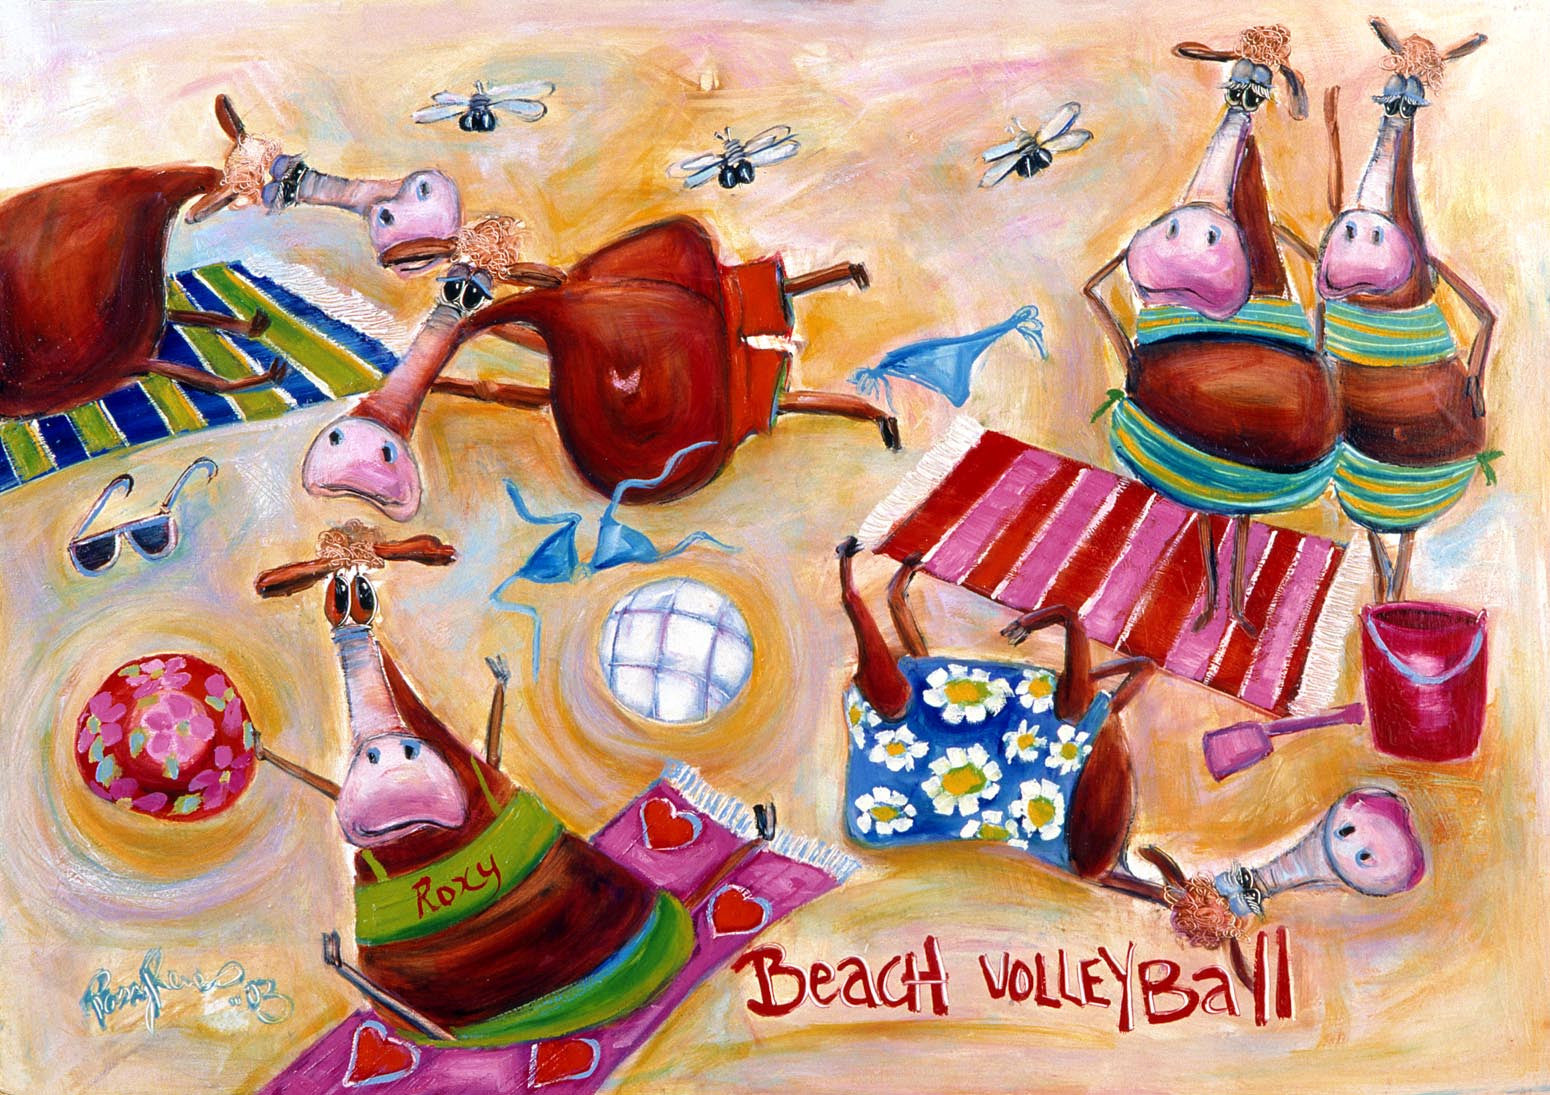 Beach Volleyball - Year 2003